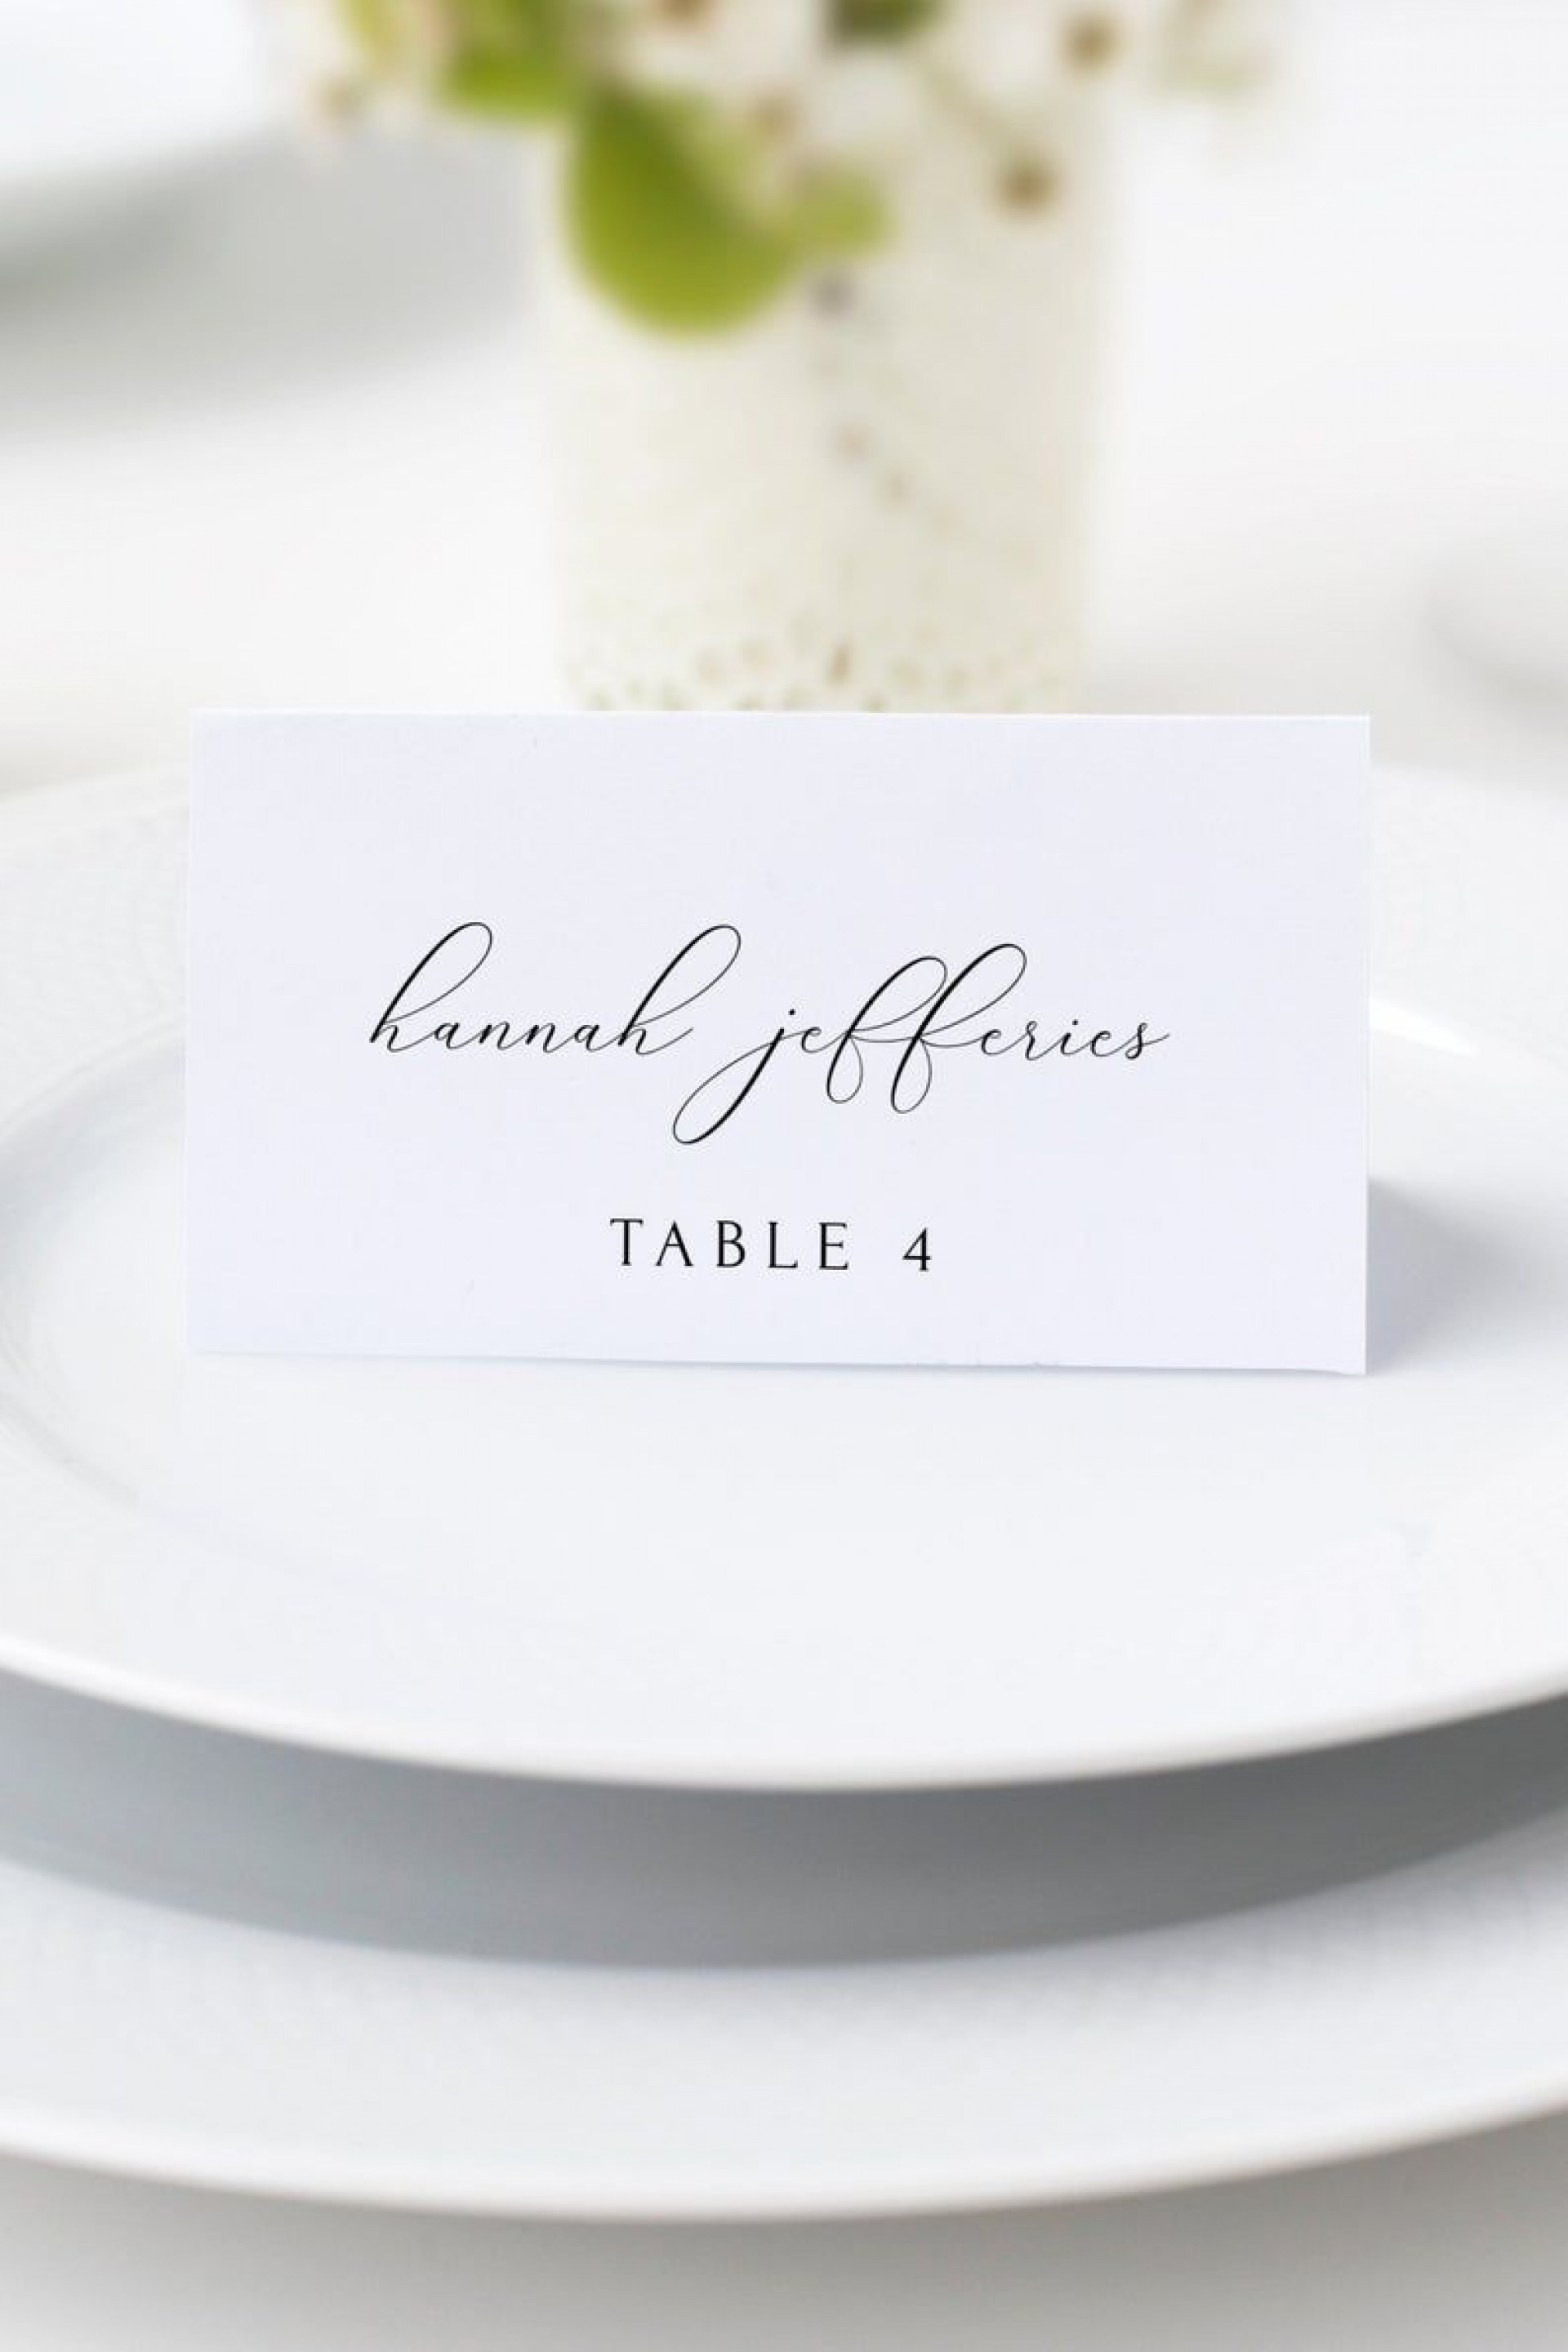 006 Fantastic Wedding Name Card Template Picture  Seating Chart Place Free1920